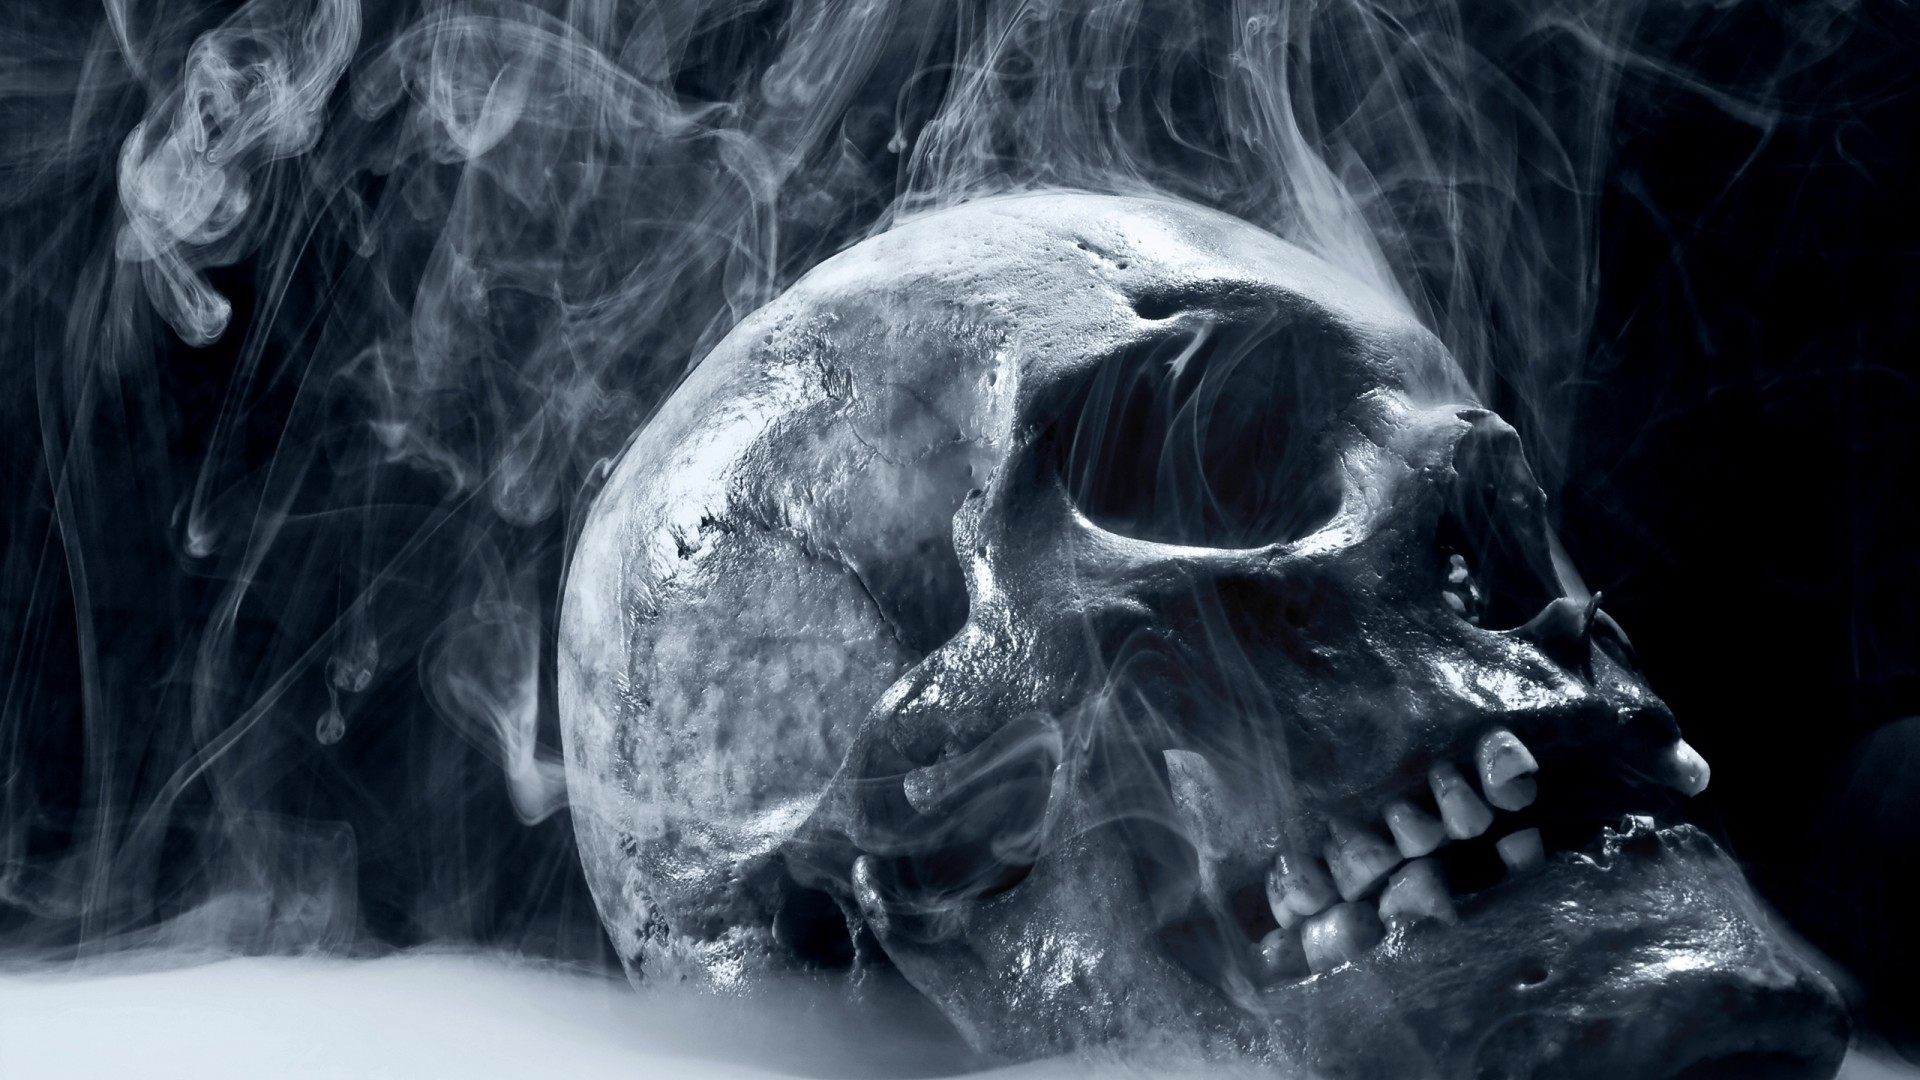 Res: 1920x1080,  Scary Skull Wallpapers For Desktop 1920×1080 #22746 HD Wallpaper  Res .